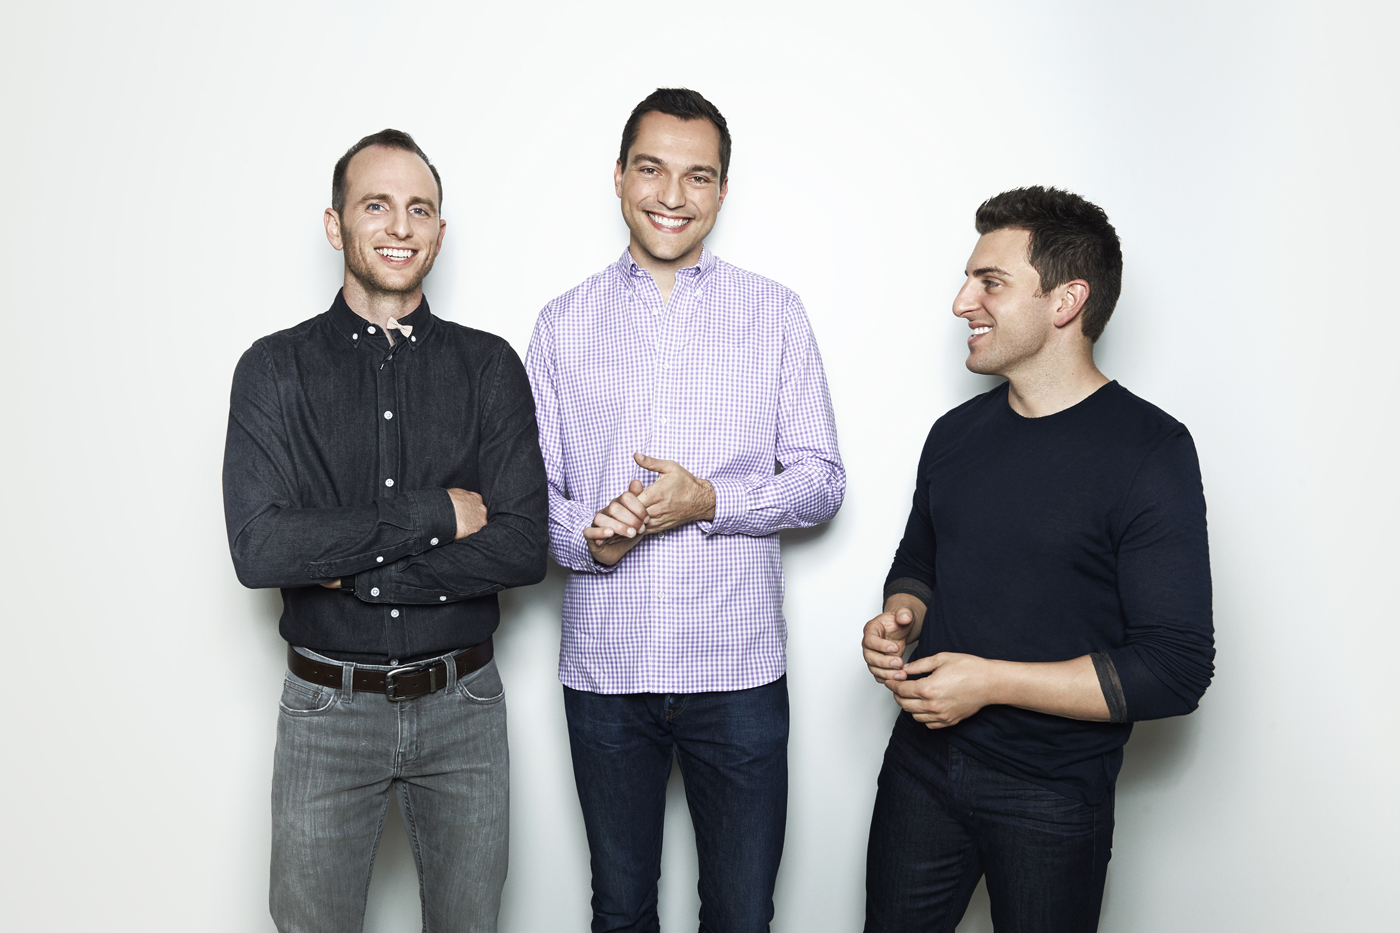 Airbnb founders. Photo provided.